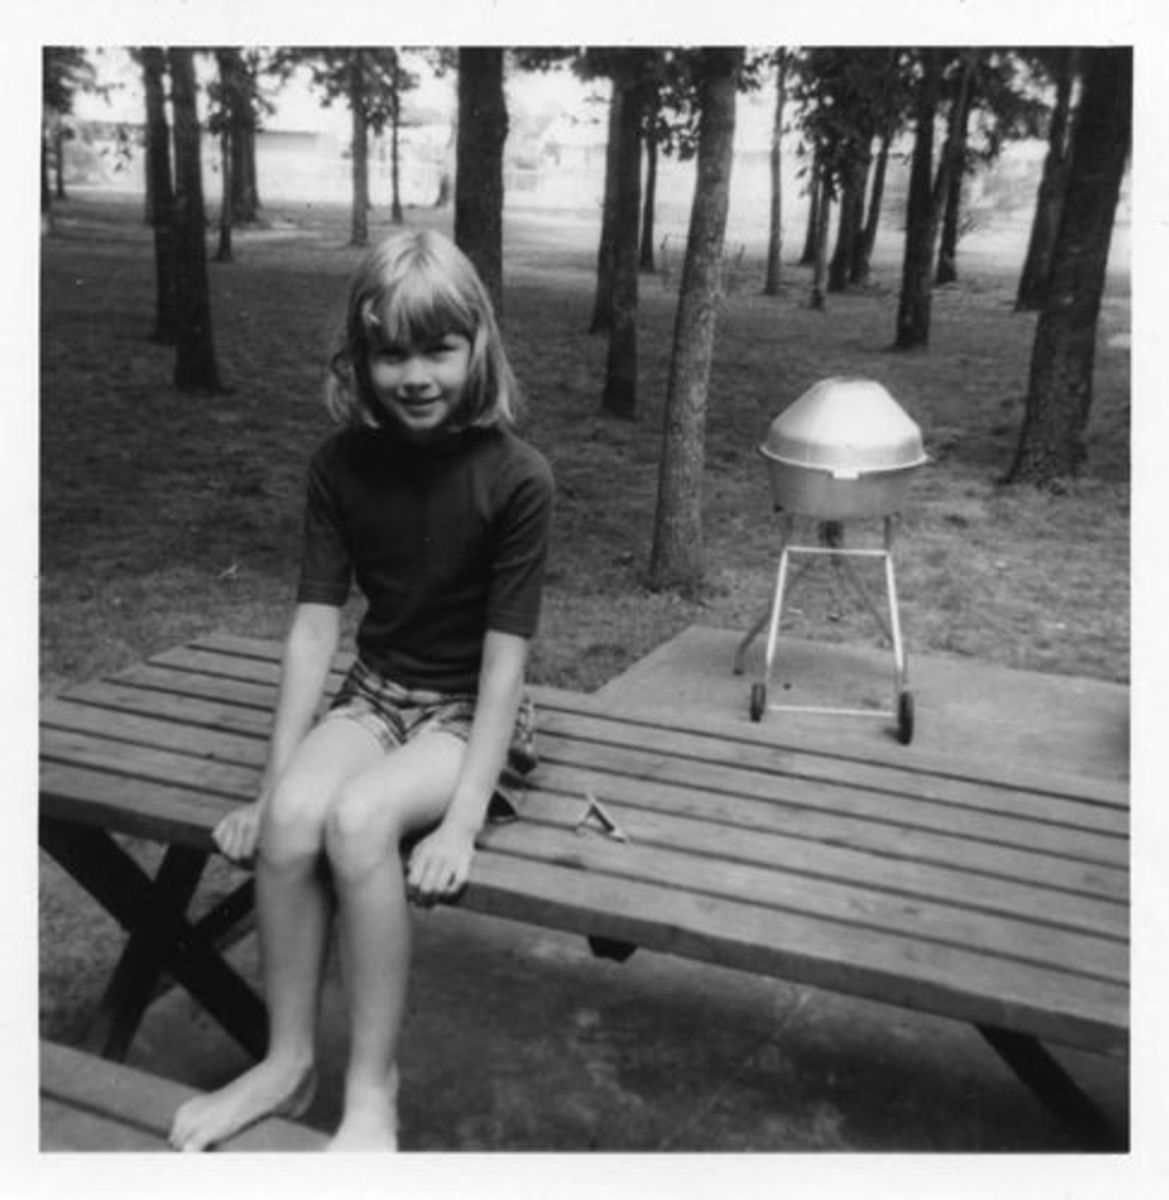 Me at the age of 10--before my Twiggy cut!